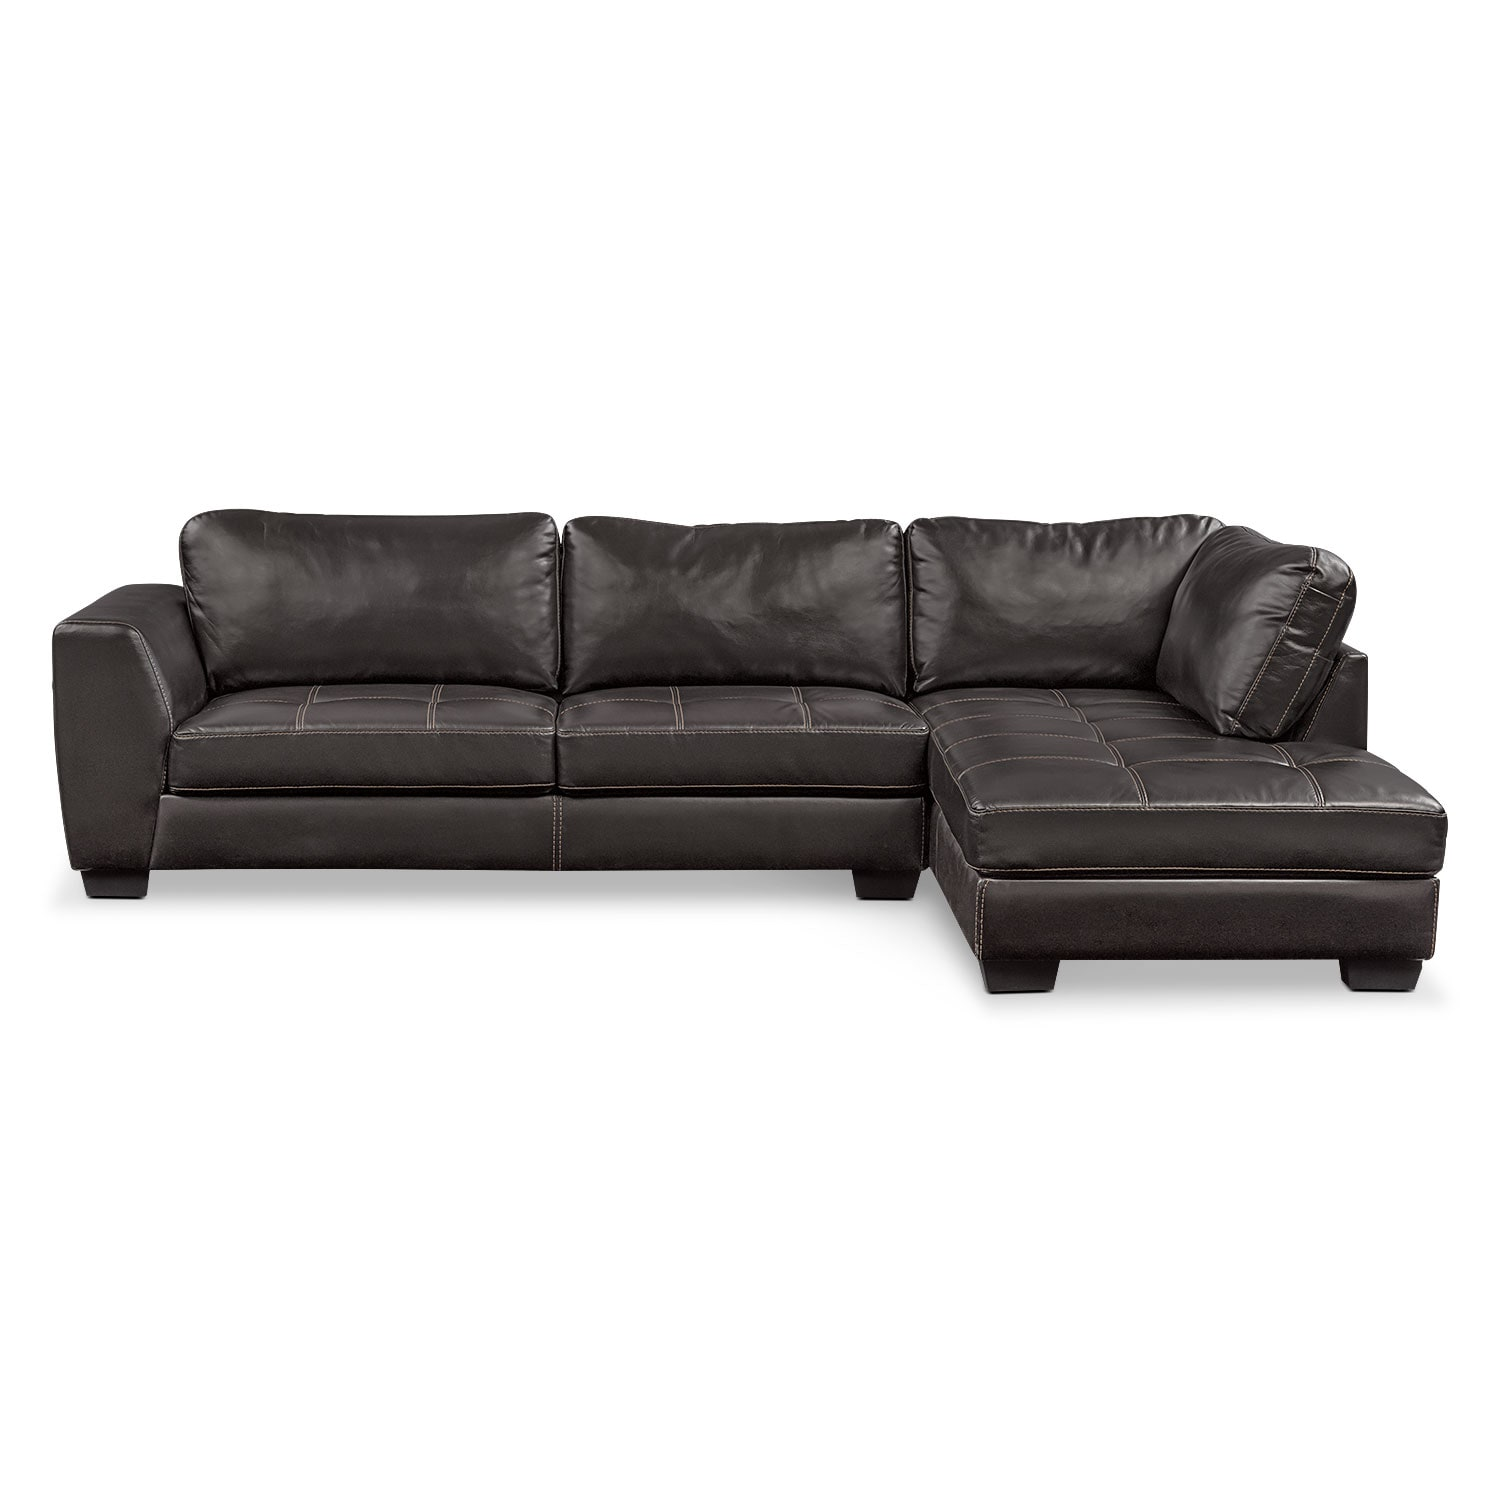 Santana 2-Piece Sectional with Right-Facing Chaise - Black